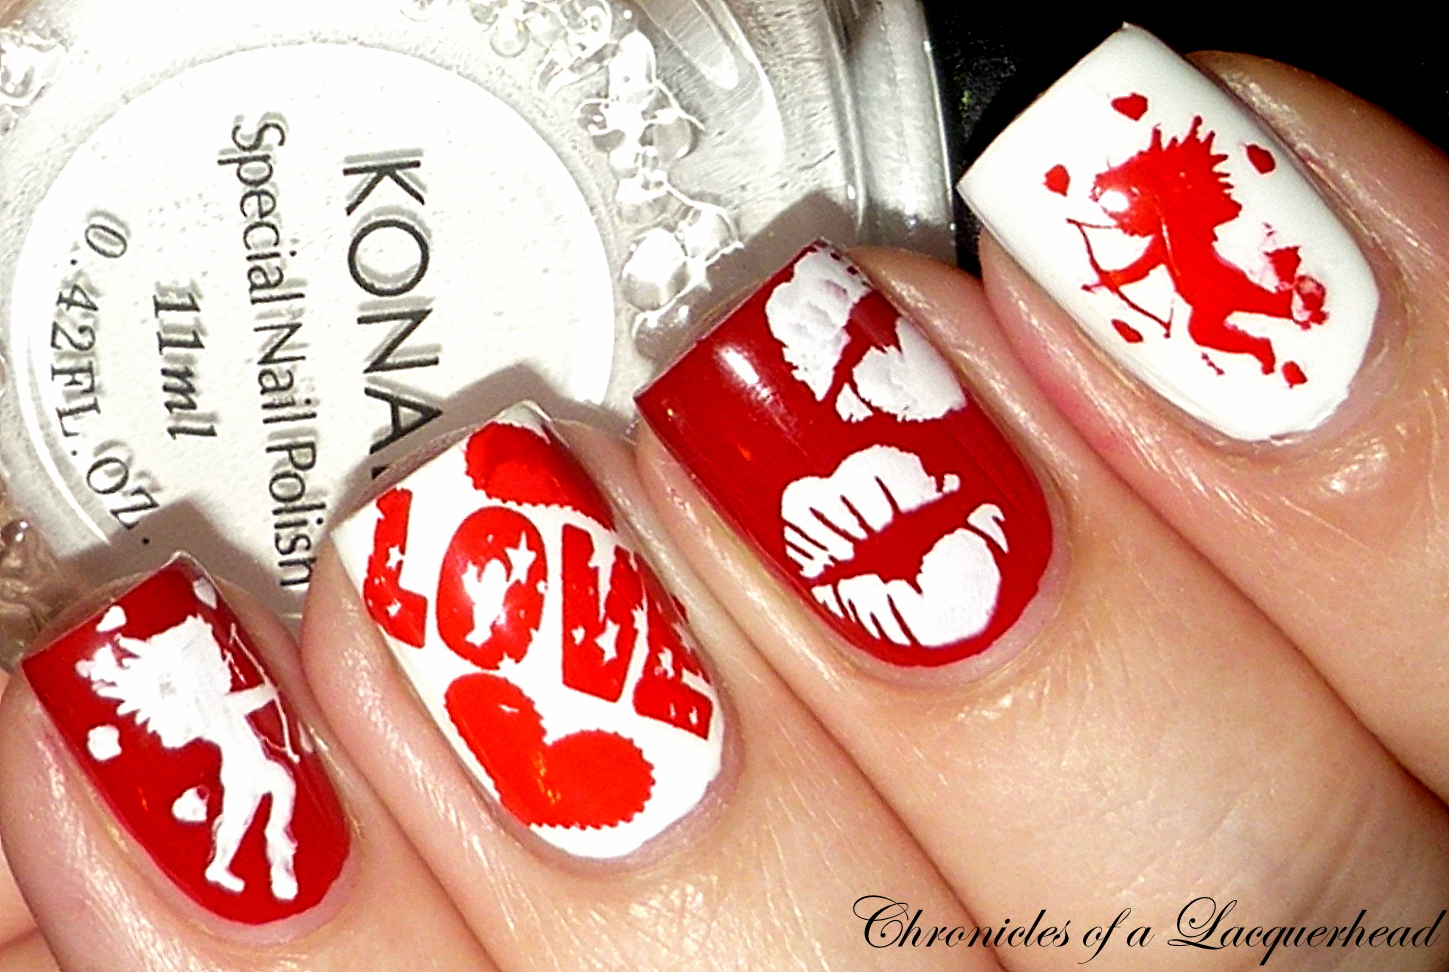 Chronicles of a Lacquerhead: Red and white love nail art